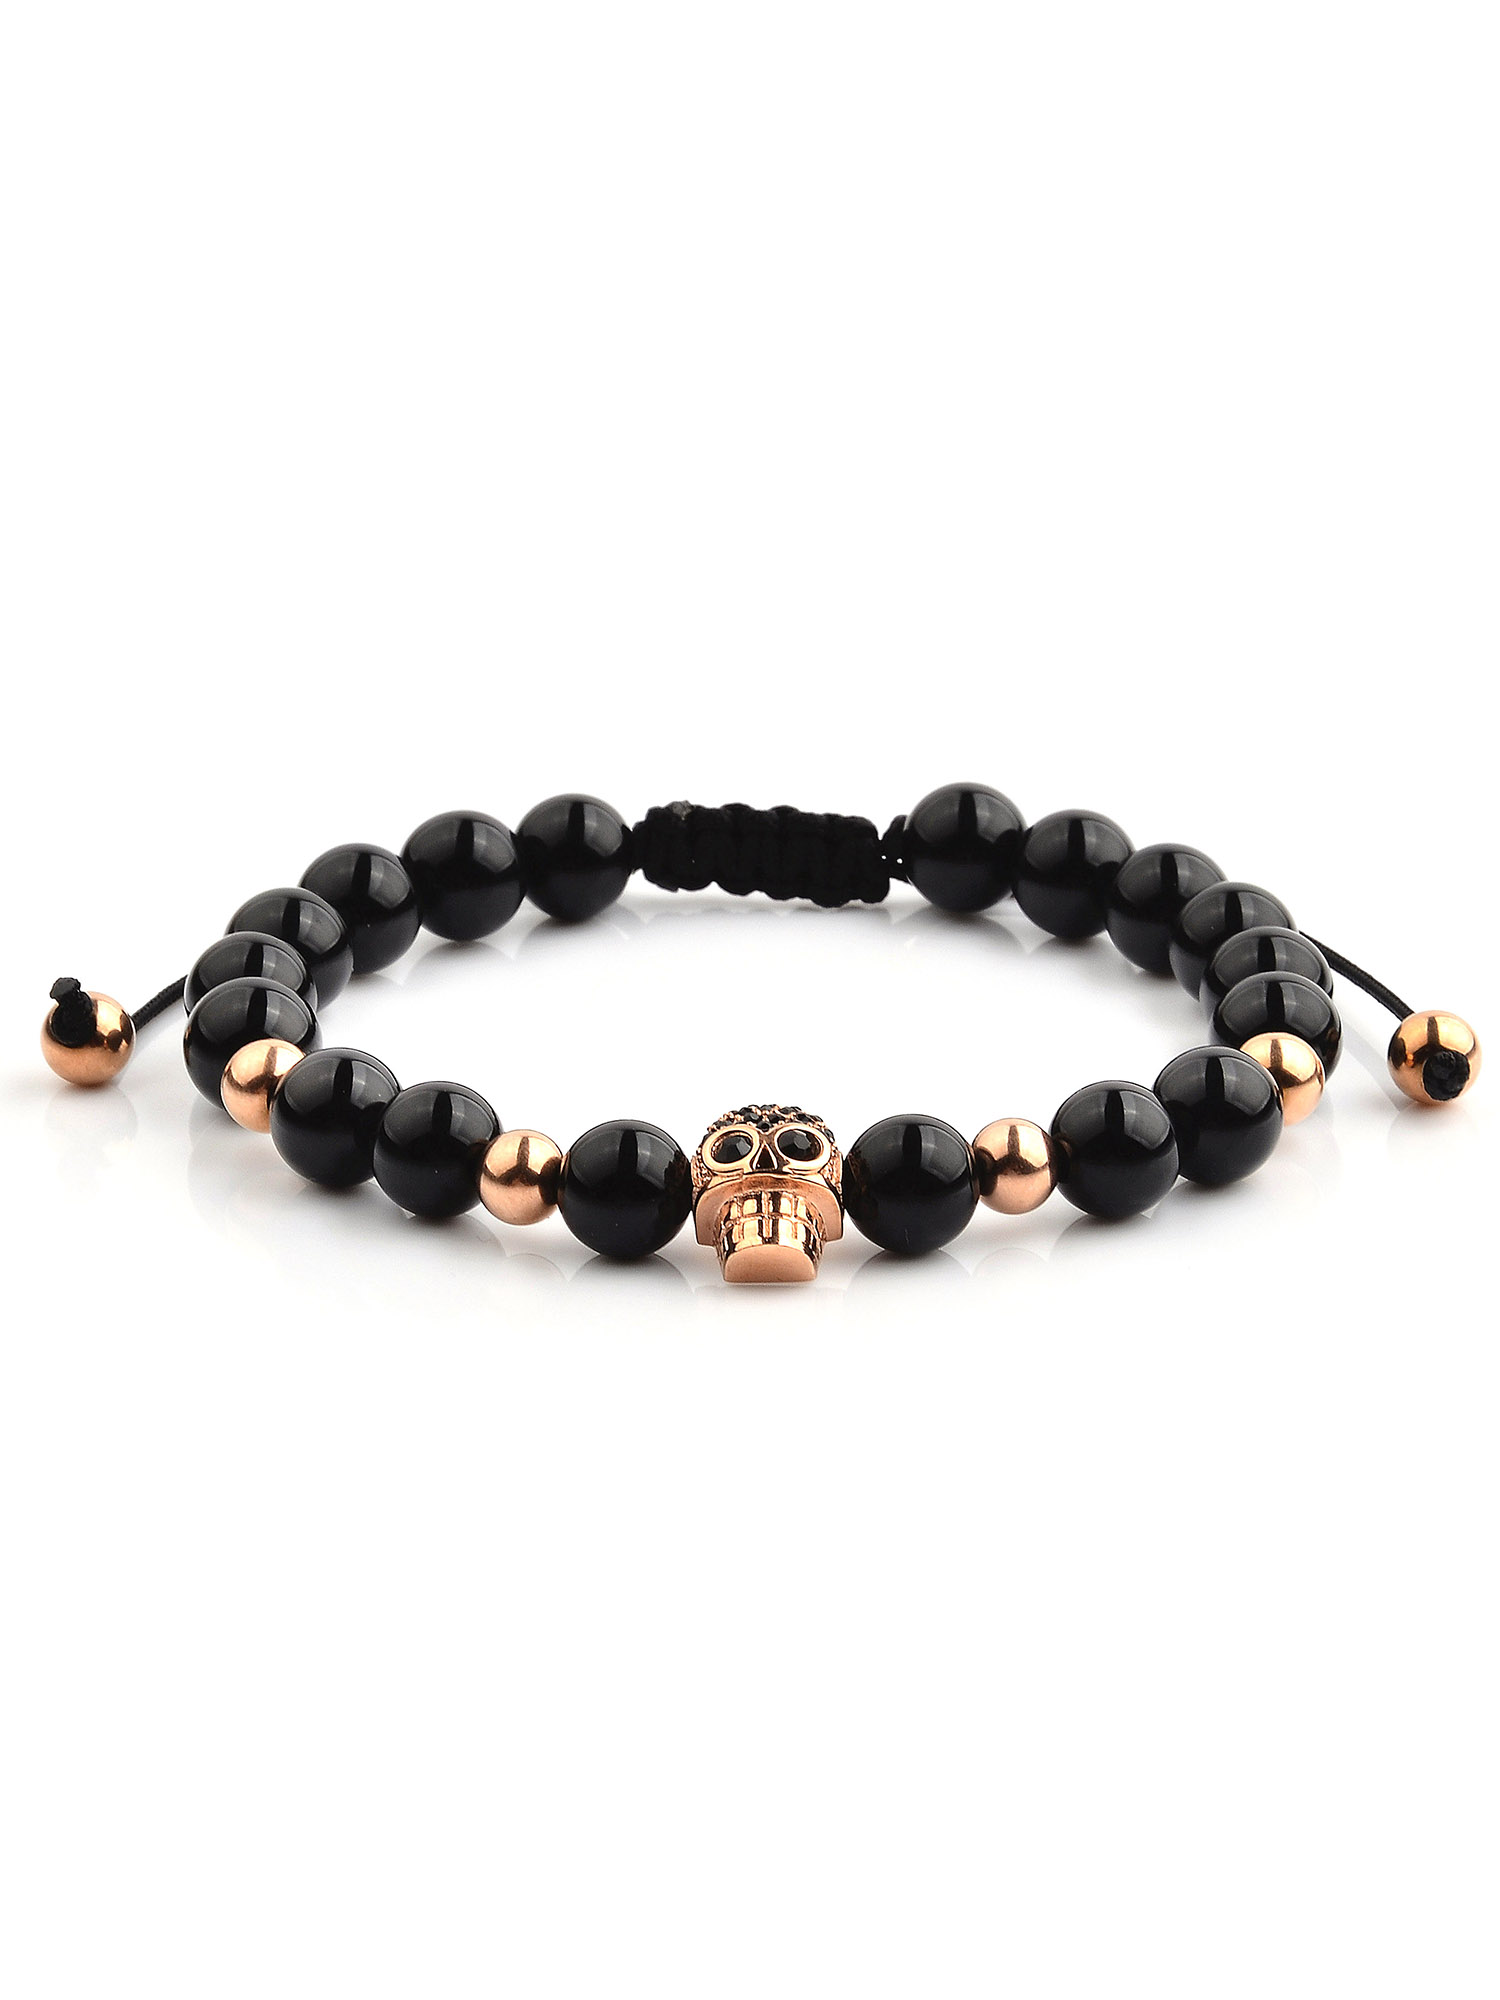 Rose Gold Plated Stainless Steel Skull Onyx Beaded Adjustable Bracelet (12mm Wide)